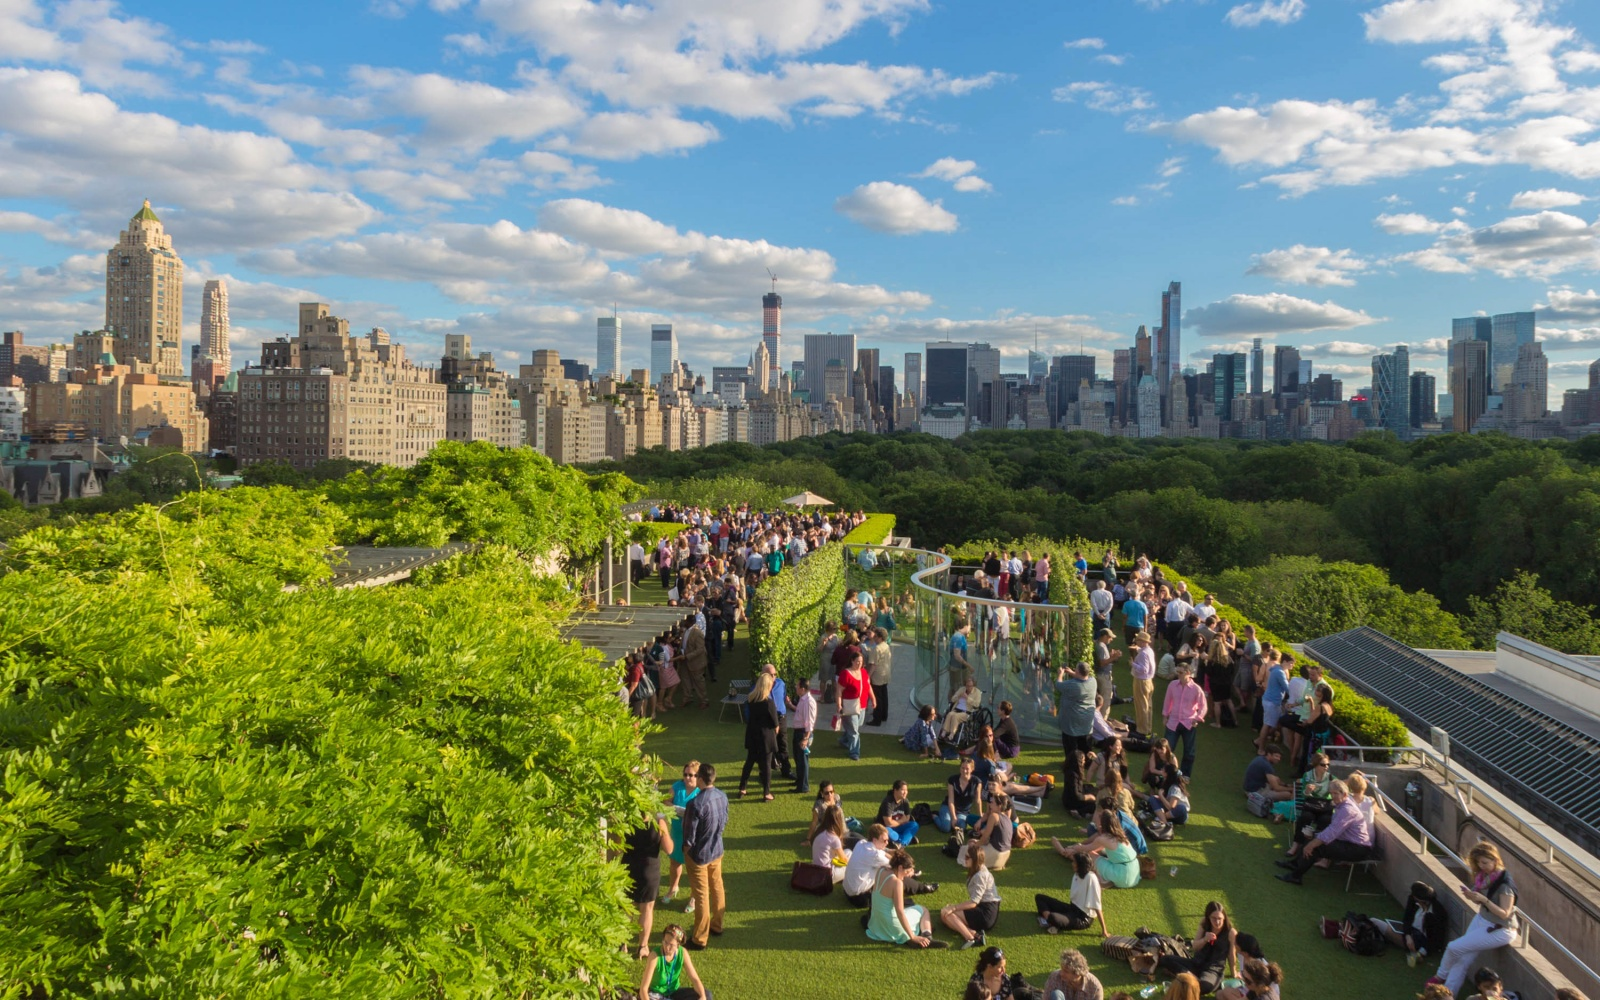 Rooftop Garden and Martini Café at the Metropolitan Museum of Art